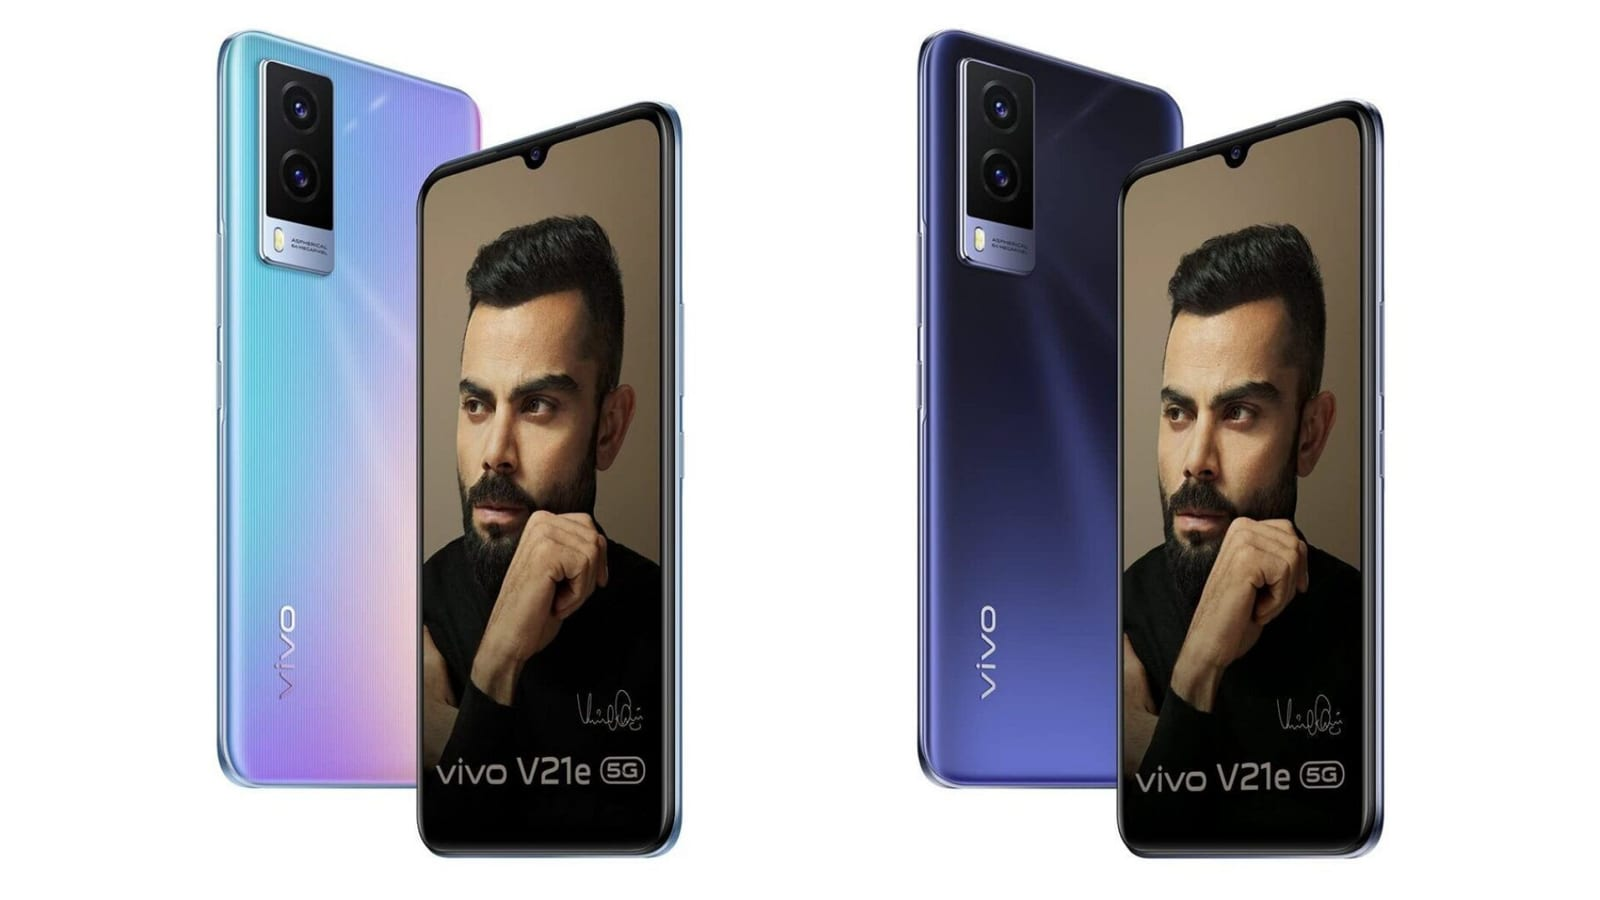 Vivo V21e 5G price in India leaked hours before launch: Check out specs, features - HT Tech